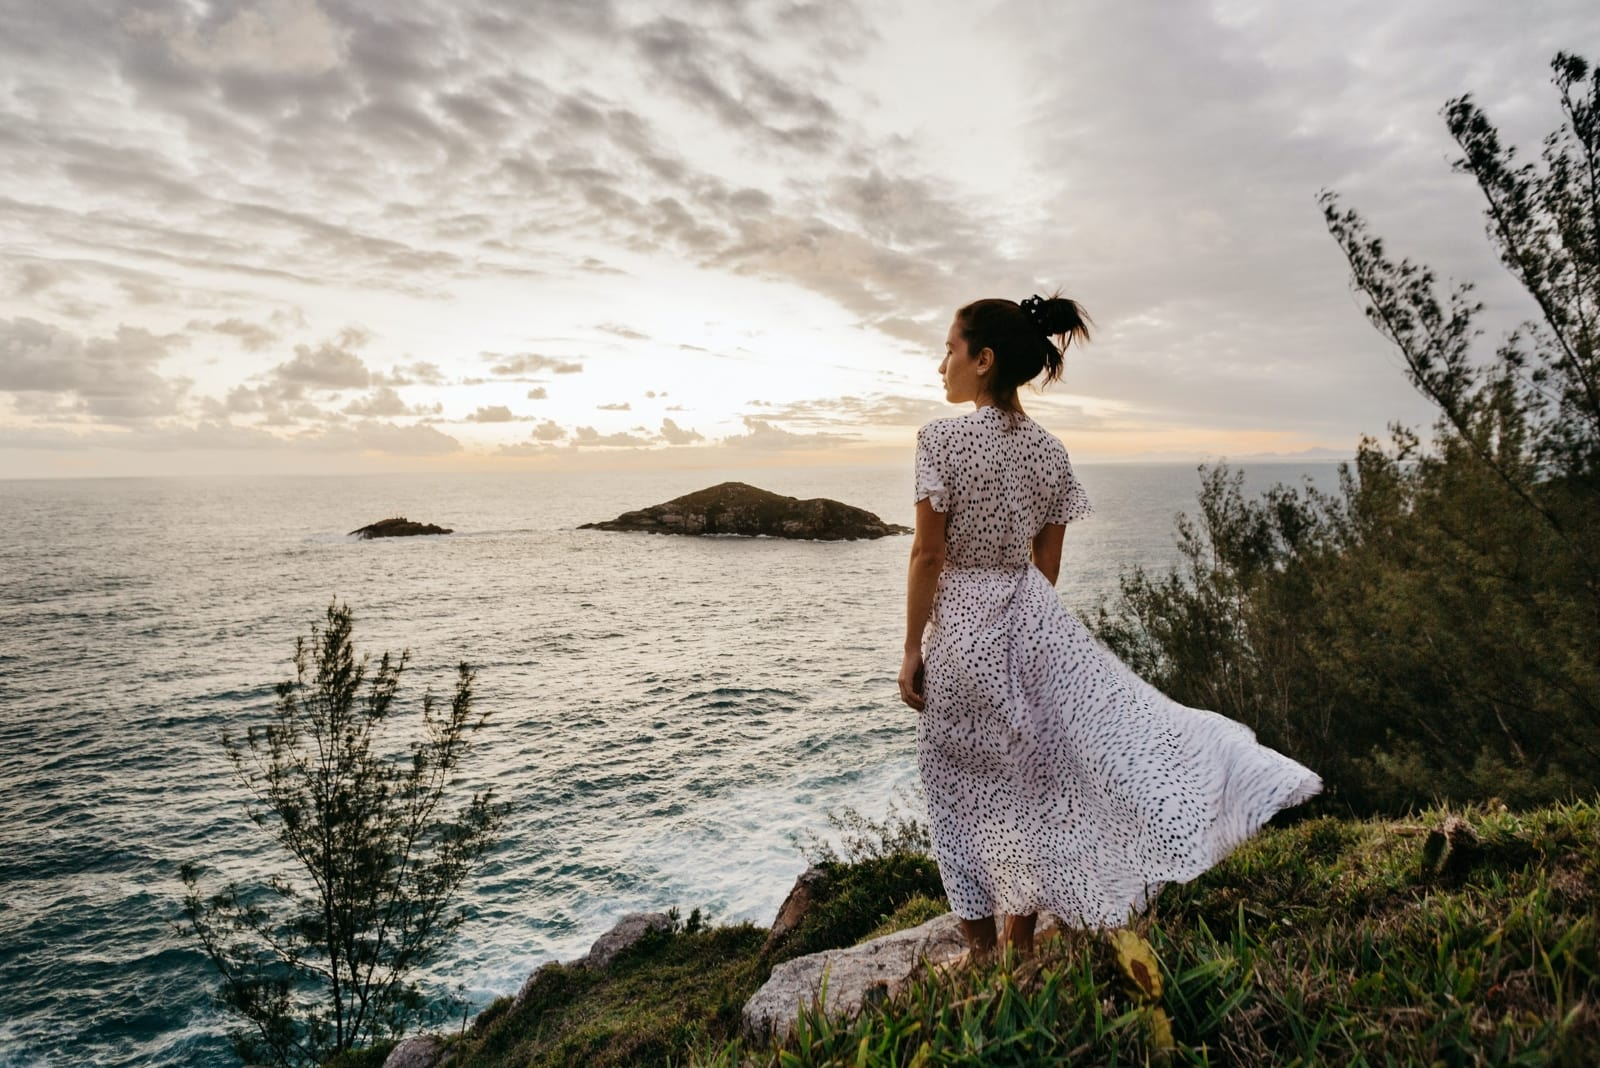 woman in white printed dress standing near sea